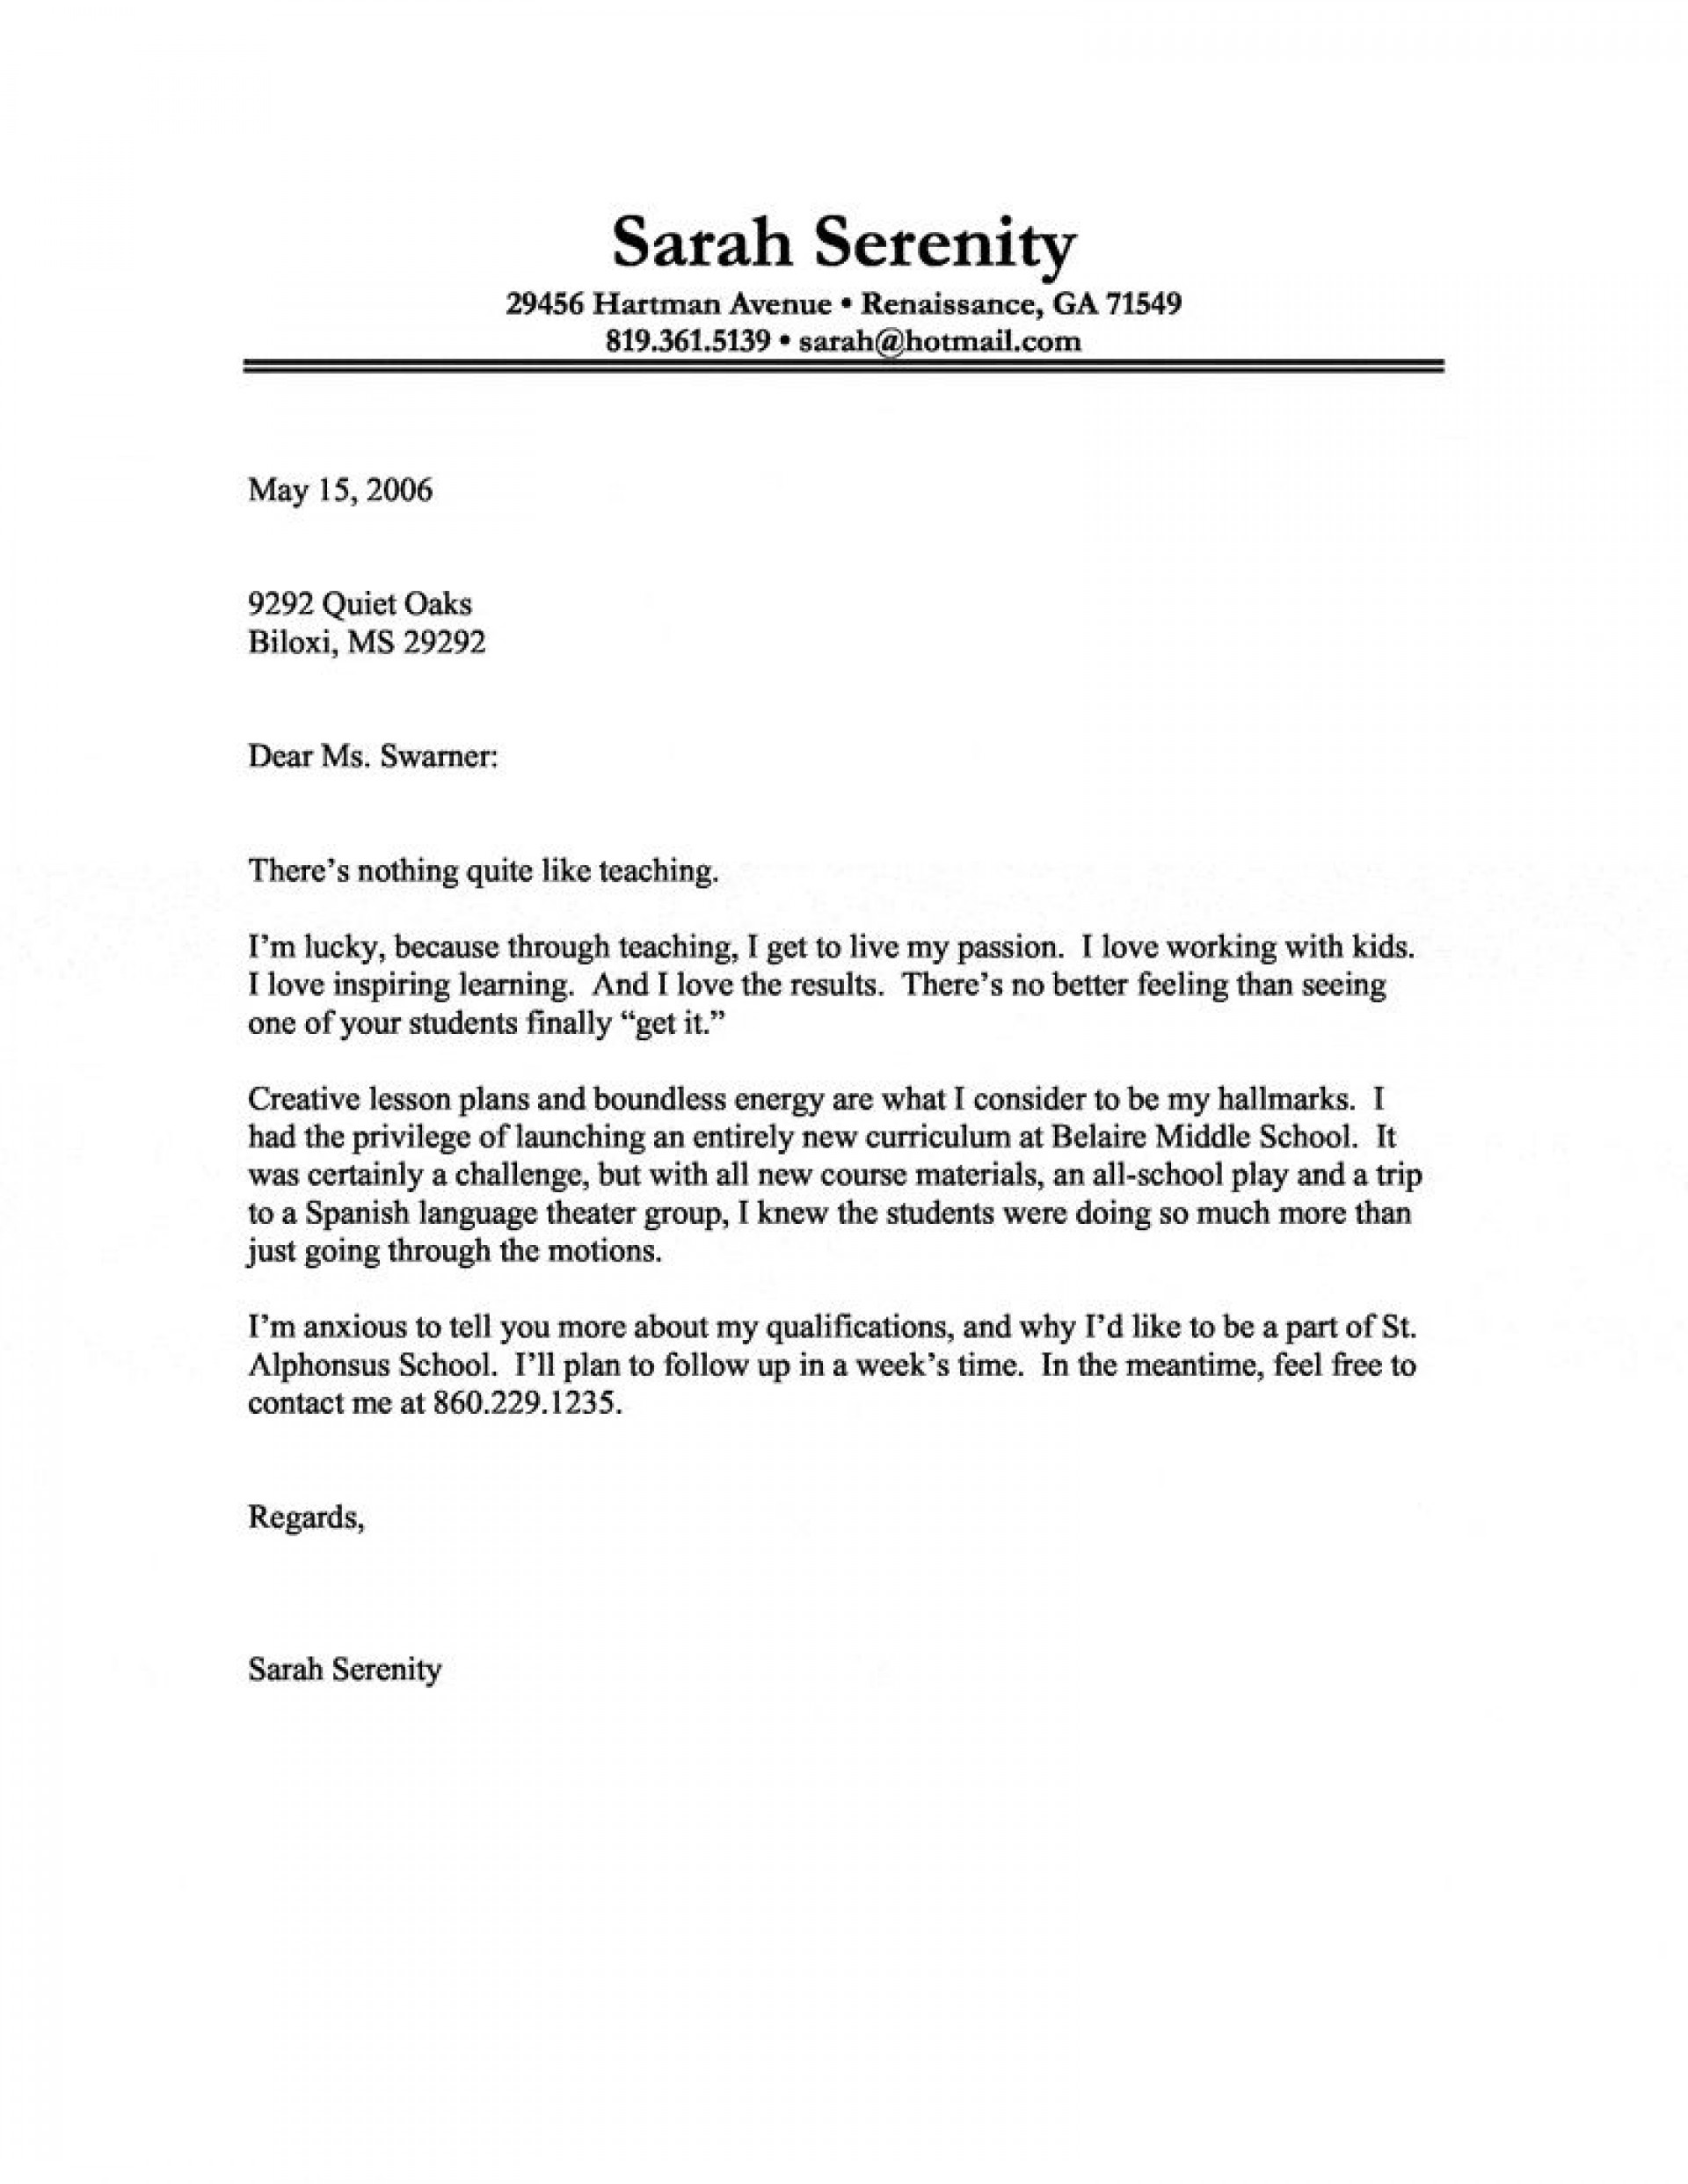 Cover Letter No Contact from www.addictionary.org